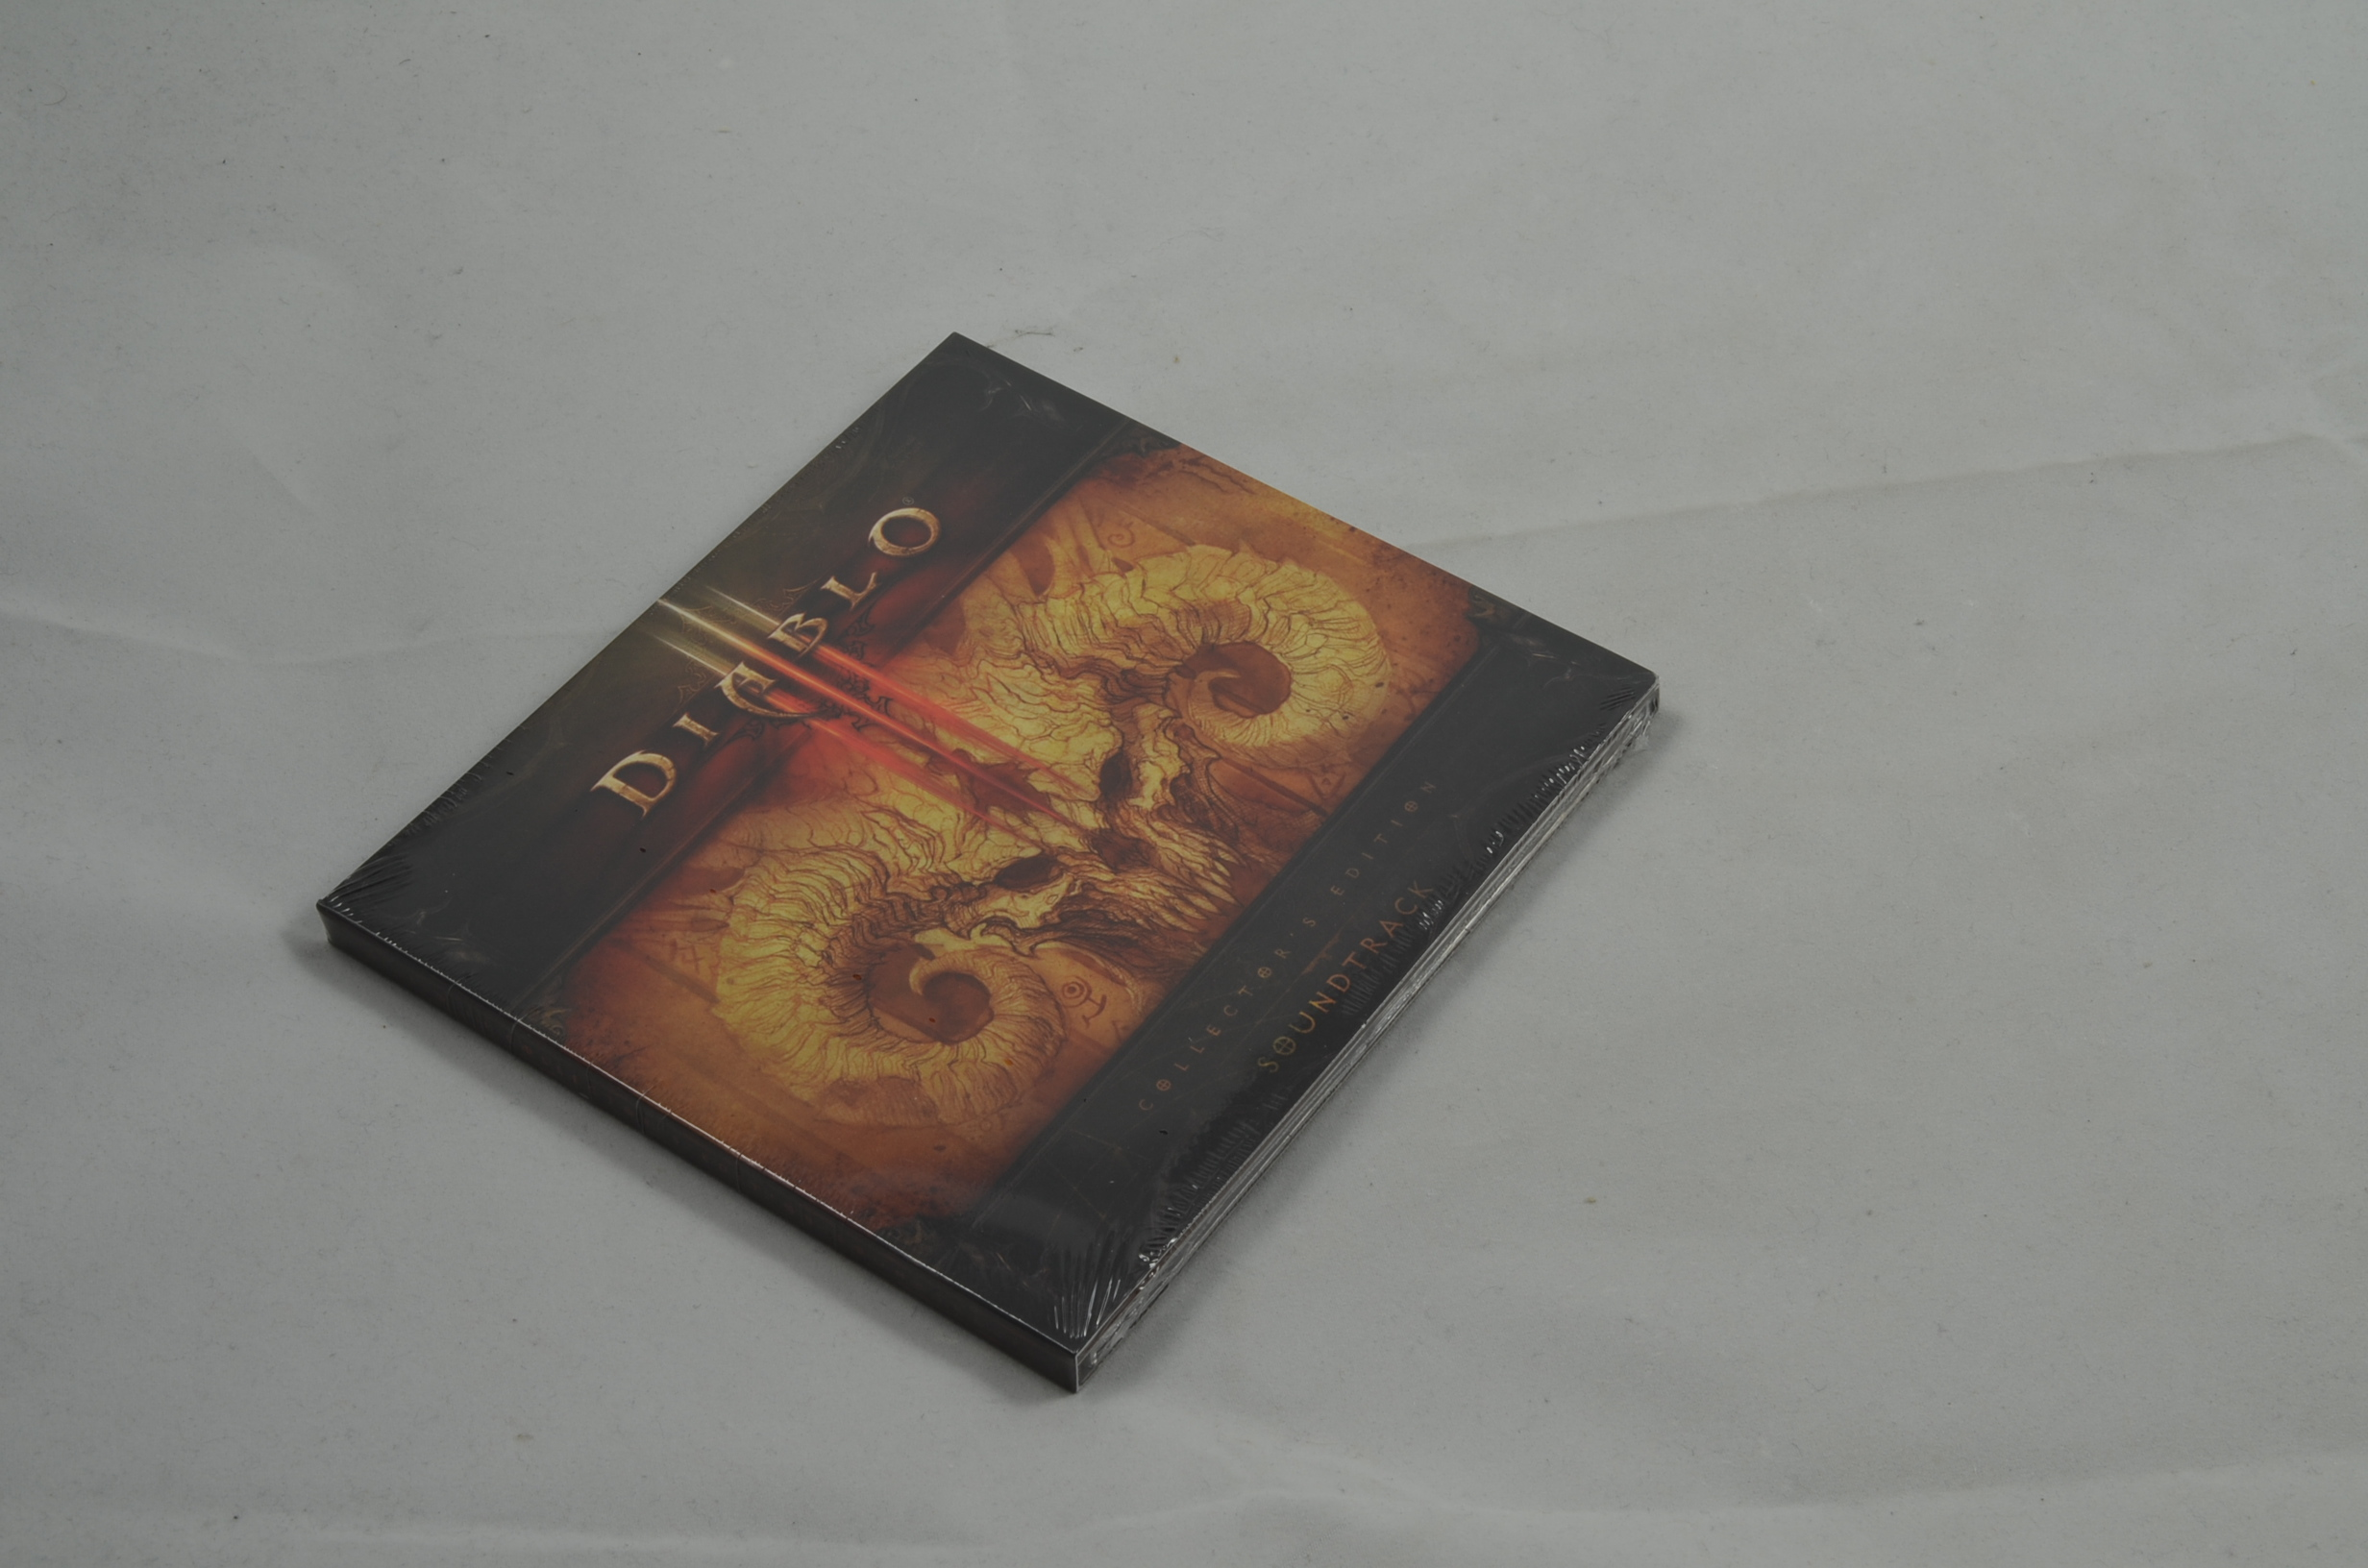 Produktbild von Diablo Collector's Edition Soundtrack (neu)